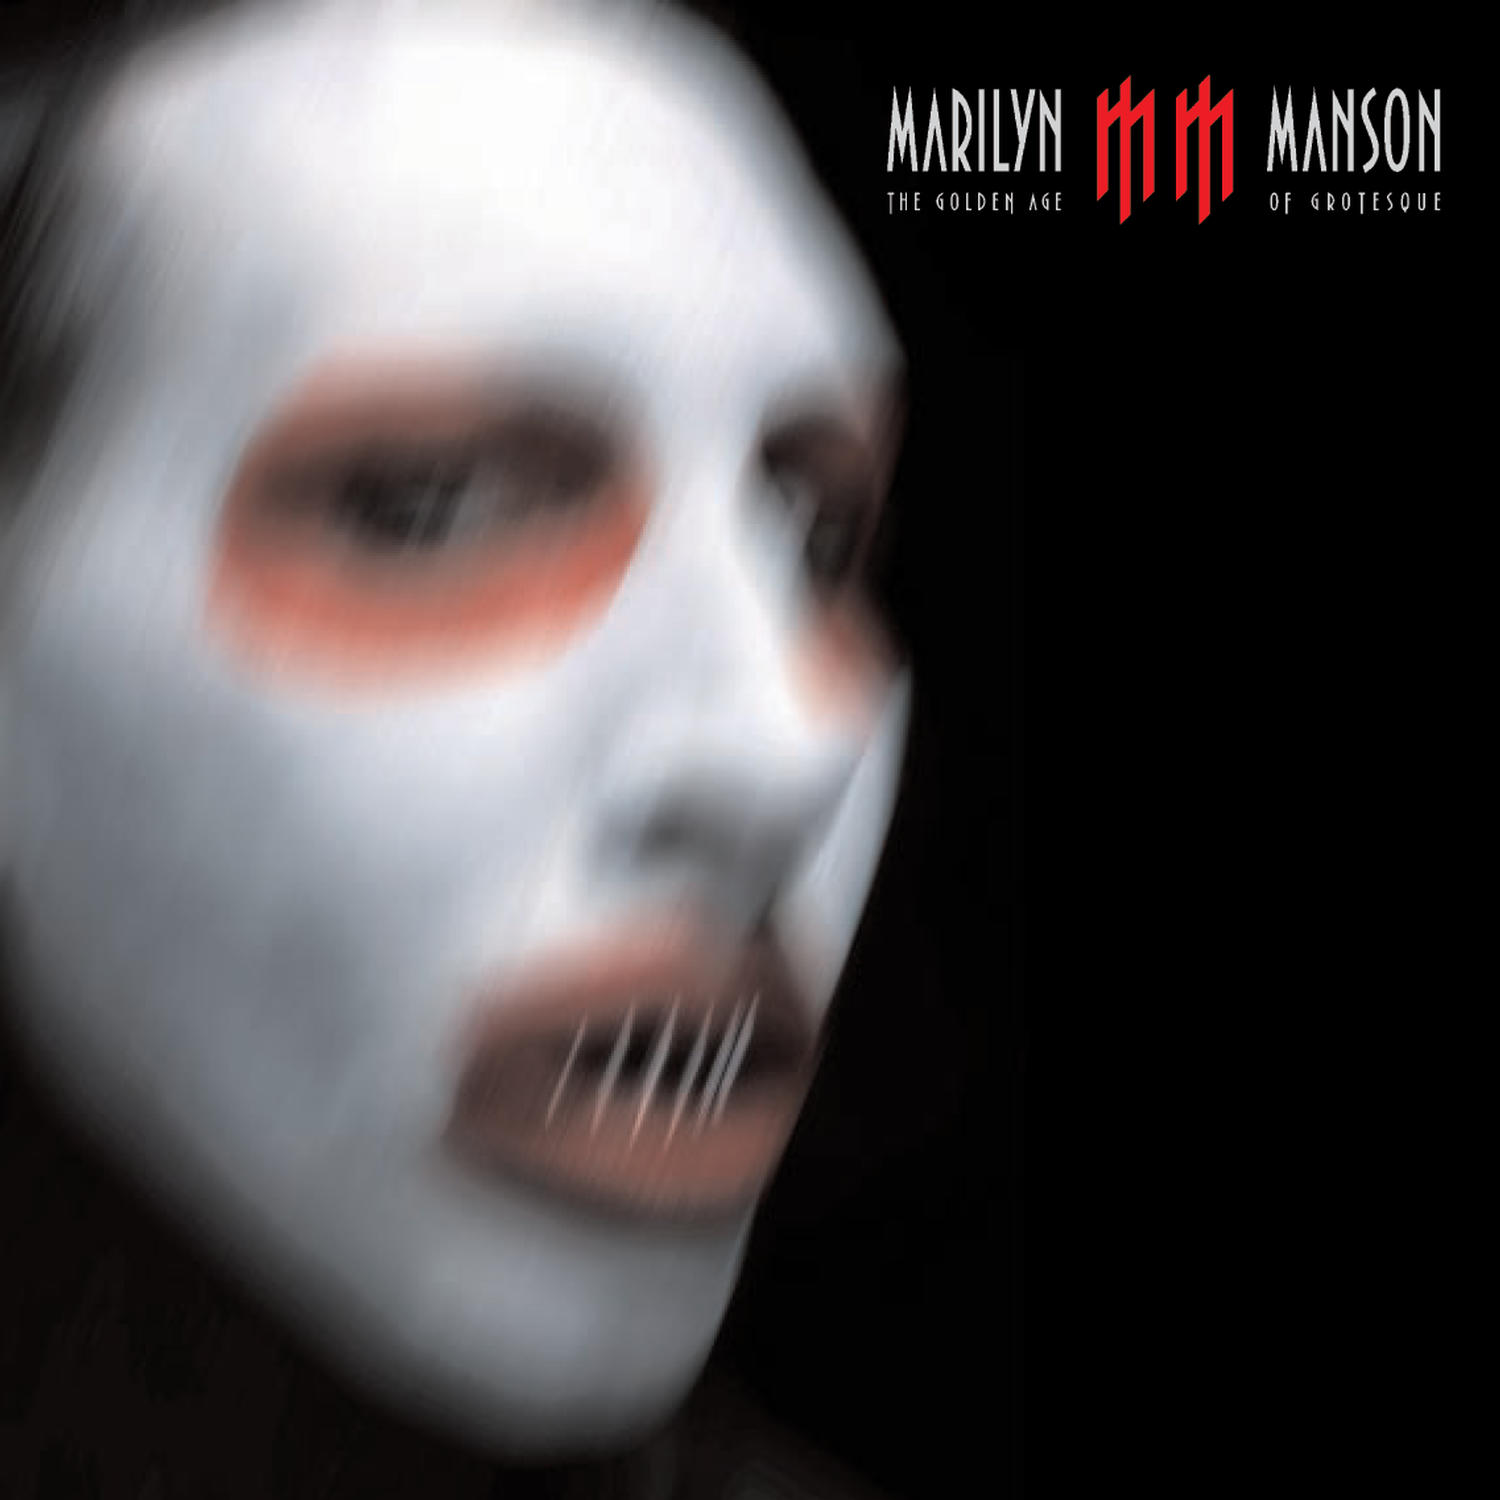 Обложка альбома Marilyn Manson «The Golden Age of Grotesque» (2003)